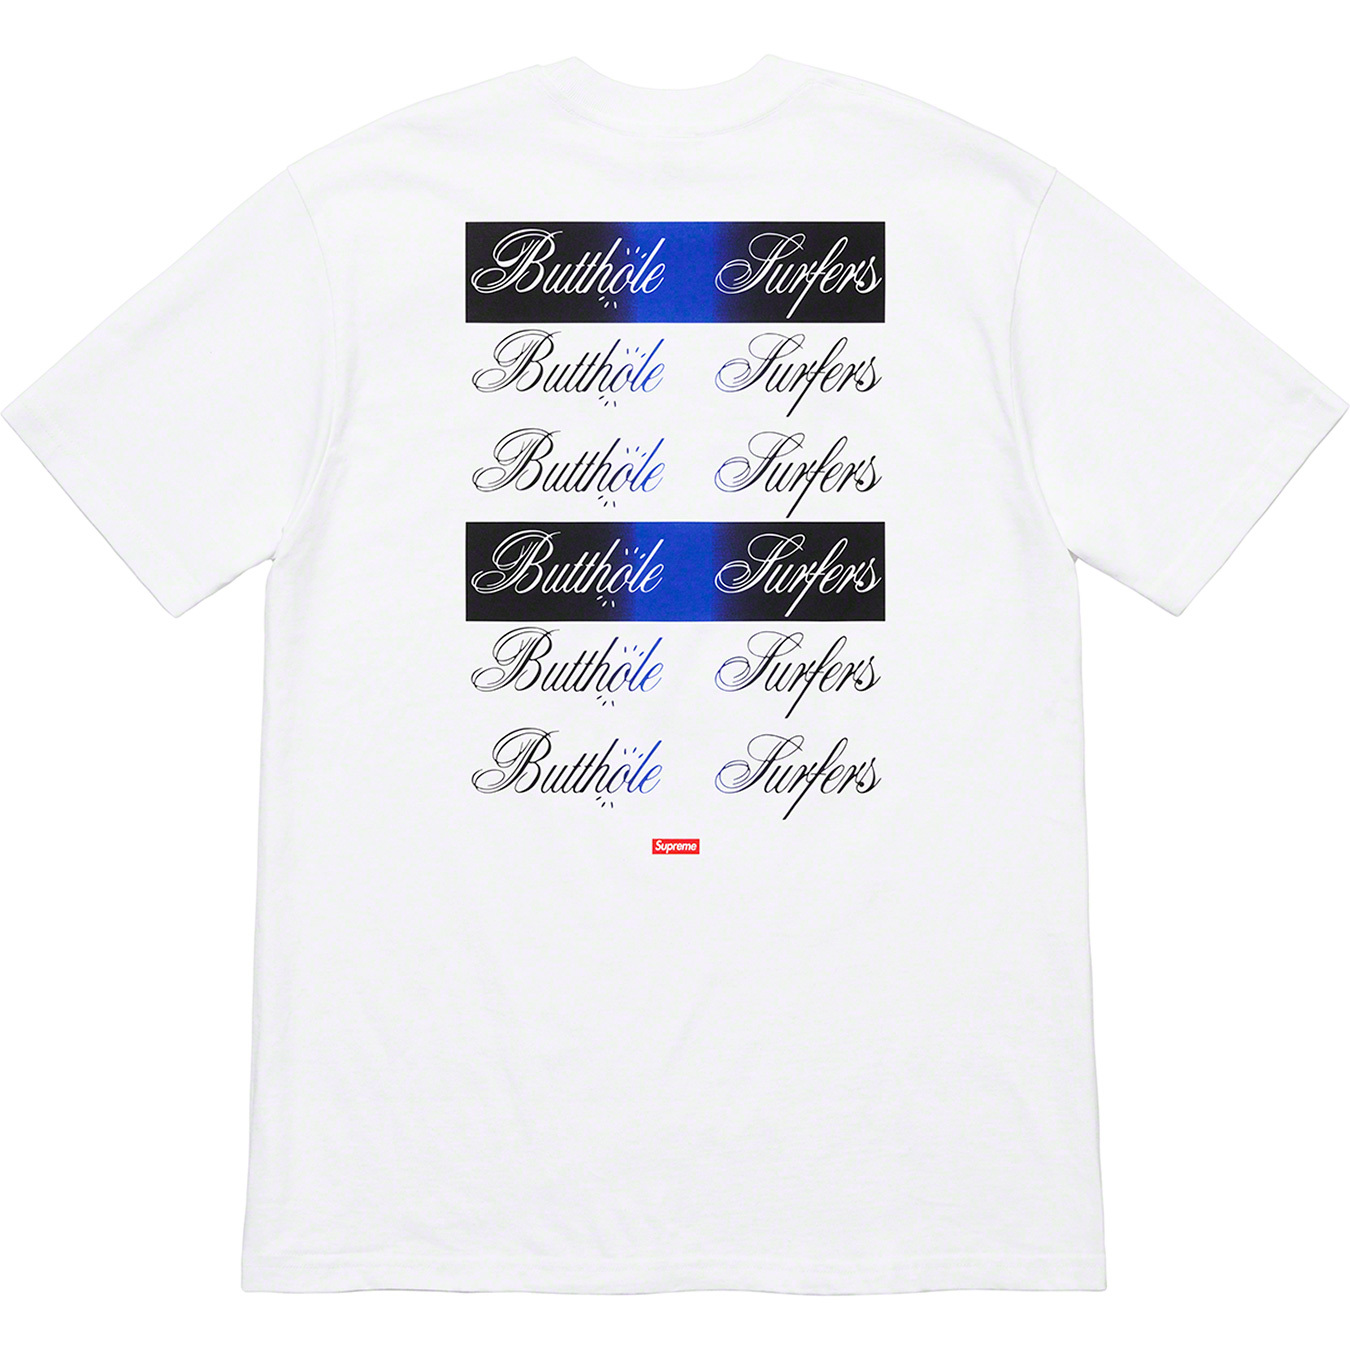 supreme-butthole-surfers-21ss-collaboration-release-20210703-week19-tee